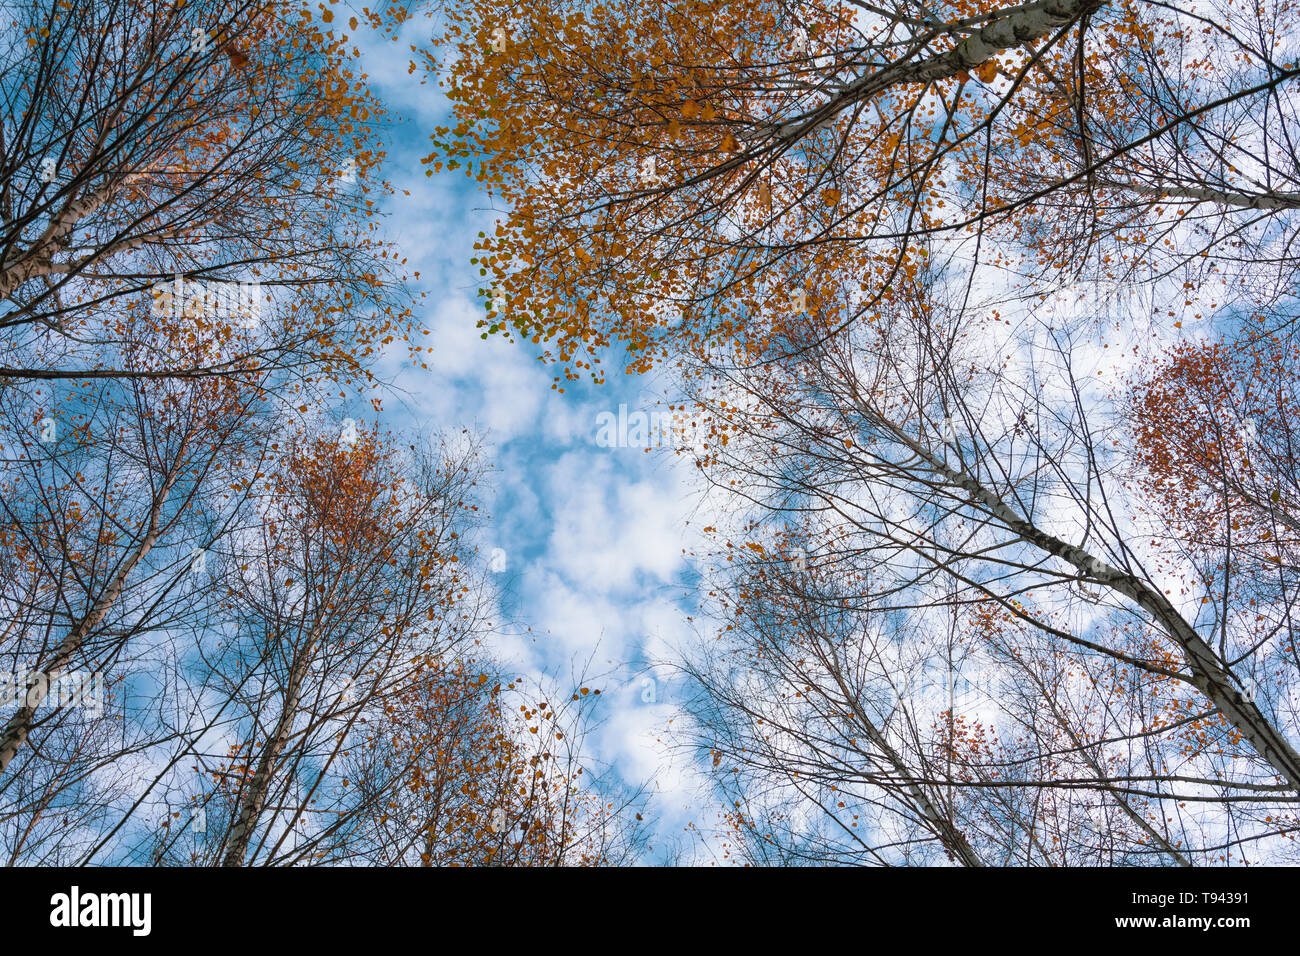 Autumn birch treetops in fall forest. Sky and clouds through the autumn tree branches from below. Foliage background. Copy space - Stock Image